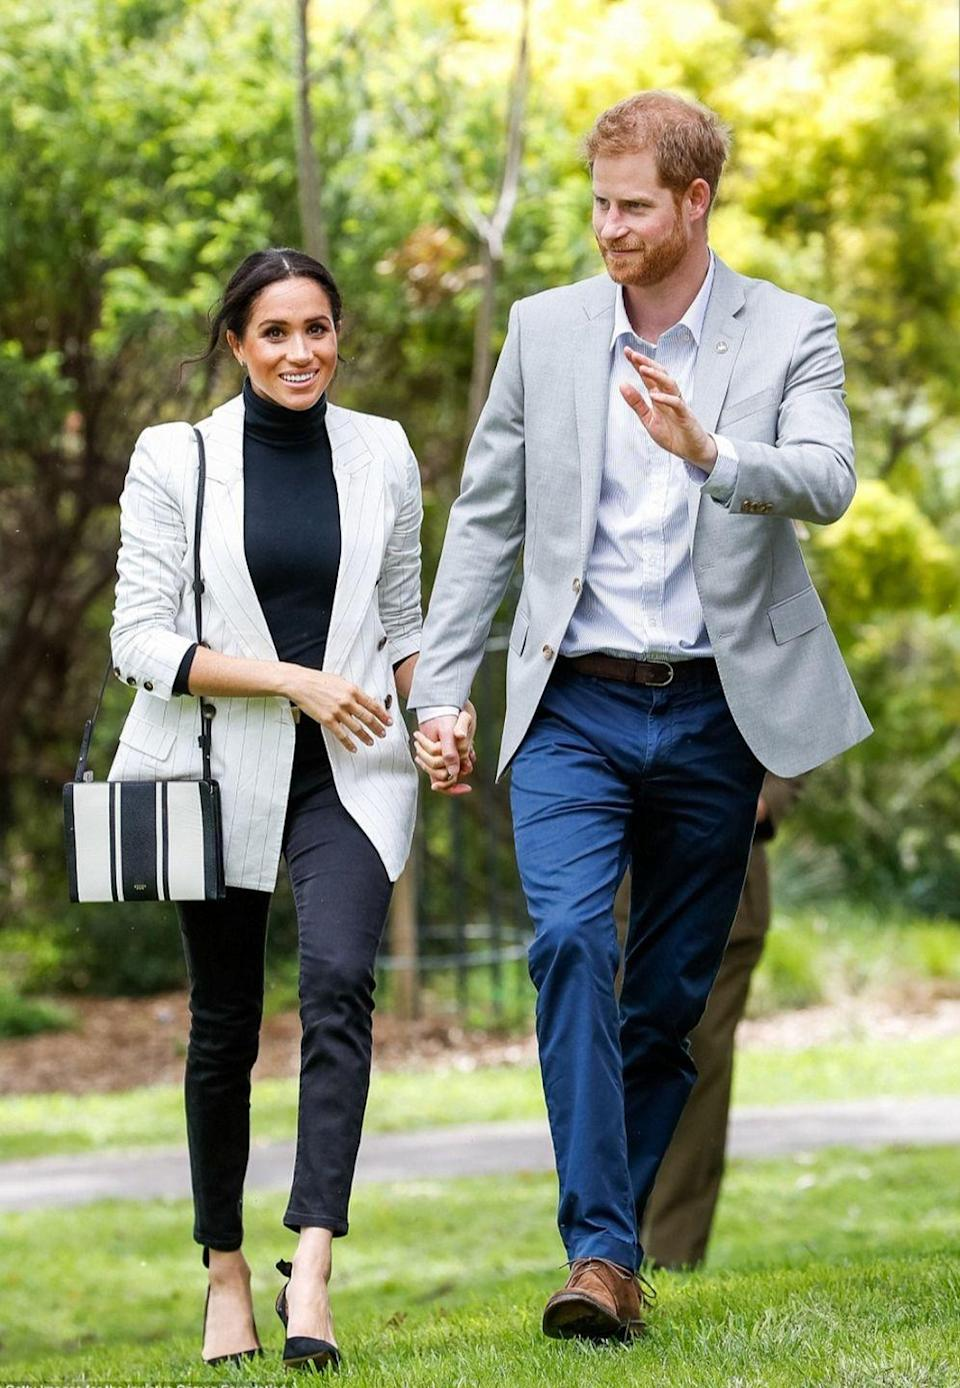 """<p>On Sunday, Meghan and Harry <a href=""""https://www.townandcountrymag.com/society/tradition/g23940939/meghan-markle-prince-harry-invictus-games-sydney-2018-royal-tour-photo-day-6/"""" rel=""""nofollow noopener"""" target=""""_blank"""" data-ylk=""""slk:attended a reception hosted by the Prime Minister"""" class=""""link rapid-noclick-resp"""">attended a reception hosted by the Prime Minister</a> of Australia. The Duchess wore a blazer by L'Agence with a black turtle neck and black jeans by <a href=""""https://outlanddenim.com/products/harriet-in-black"""" rel=""""nofollow noopener"""" target=""""_blank"""" data-ylk=""""slk:Outland Denim"""" class=""""link rapid-noclick-resp"""">Outland Denim</a> for the event. She accessorized with Aquazzura Deneuve Pumps and a crossbody bag by Oroton.<br></p><p><a class=""""link rapid-noclick-resp"""" href=""""https://go.redirectingat.com?id=74968X1596630&url=https%3A%2F%2Fwww.harveynichols.com%2Fint%2Fbrand%2Faquazzurra-kids%2F273504-deneuve-black-suede-pumps%2Fp3169415%2F&sref=https%3A%2F%2Fwww.townandcountrymag.com%2Fstyle%2Ffashion-trends%2Fg3272%2Fmeghan-markle-preppy-style%2F"""" rel=""""nofollow noopener"""" target=""""_blank"""" data-ylk=""""slk:SHOP NOW"""">SHOP NOW</a> <em>Aquazzura Deneuve Pumps, $550.69</em></p>"""